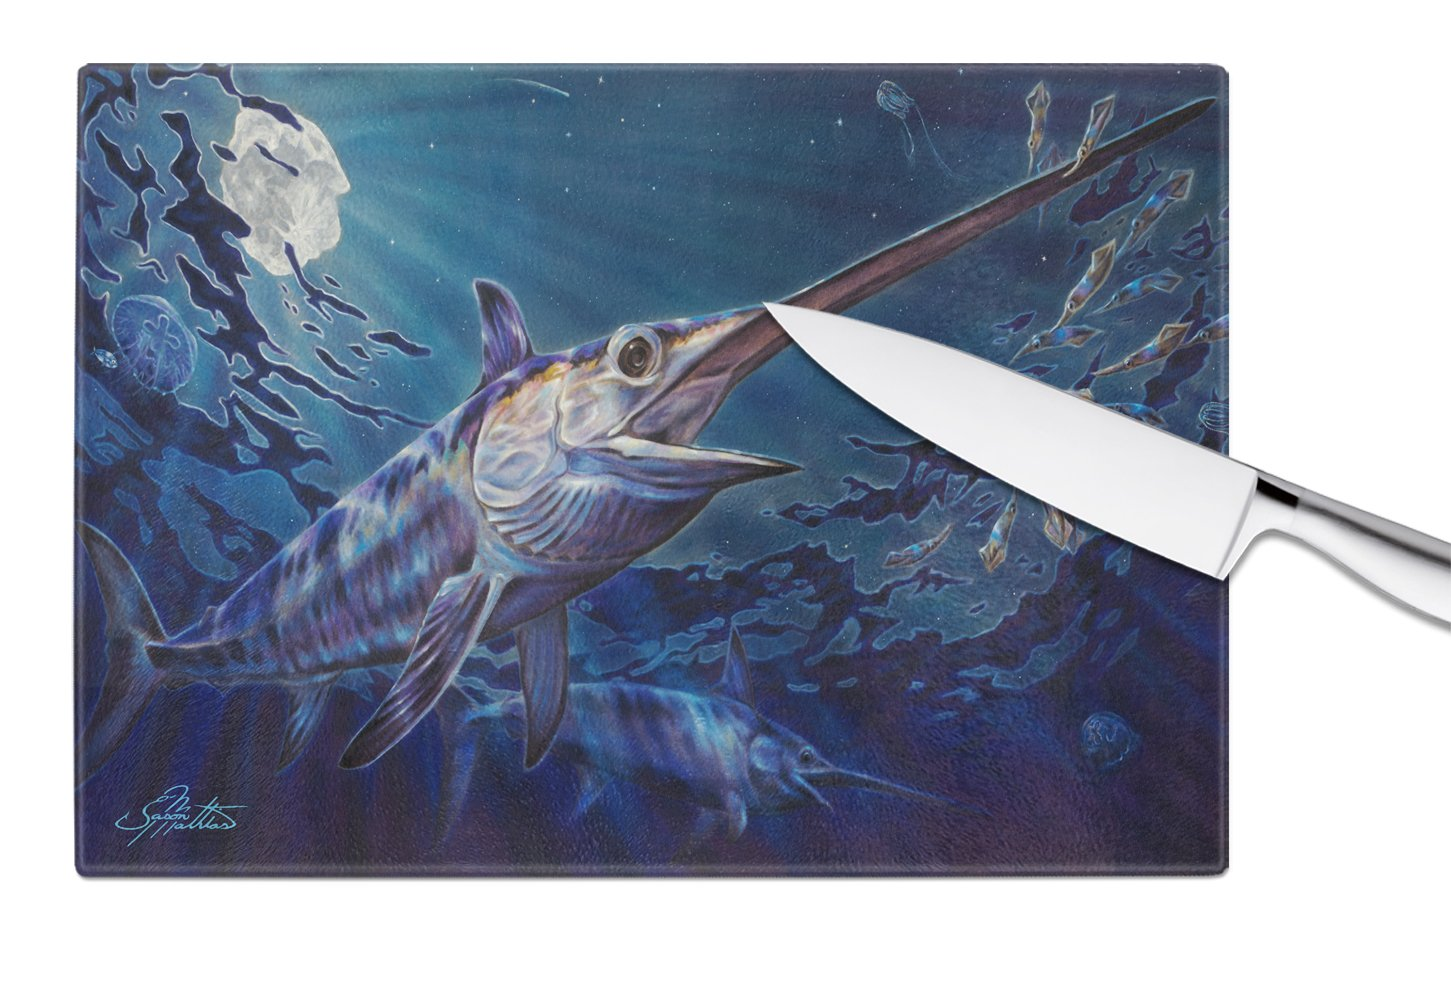 Prince Of Darkness Swordfish Glass Cutting Board Large JMA2006LCB by Caroline's Treasures